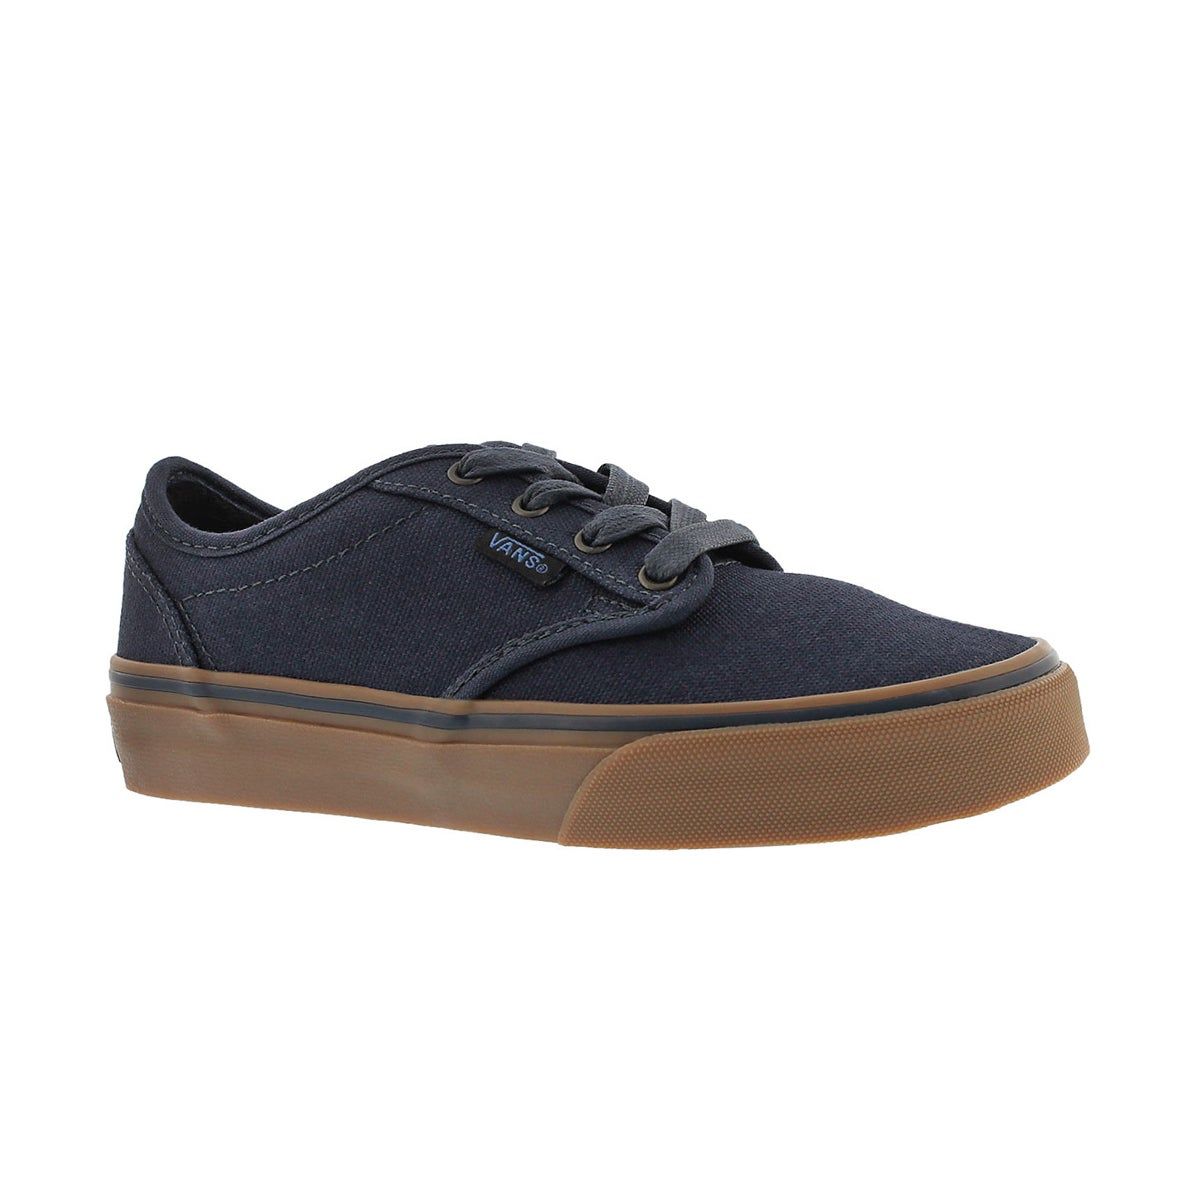 Bys Atwood navy canvas lace up sneaker